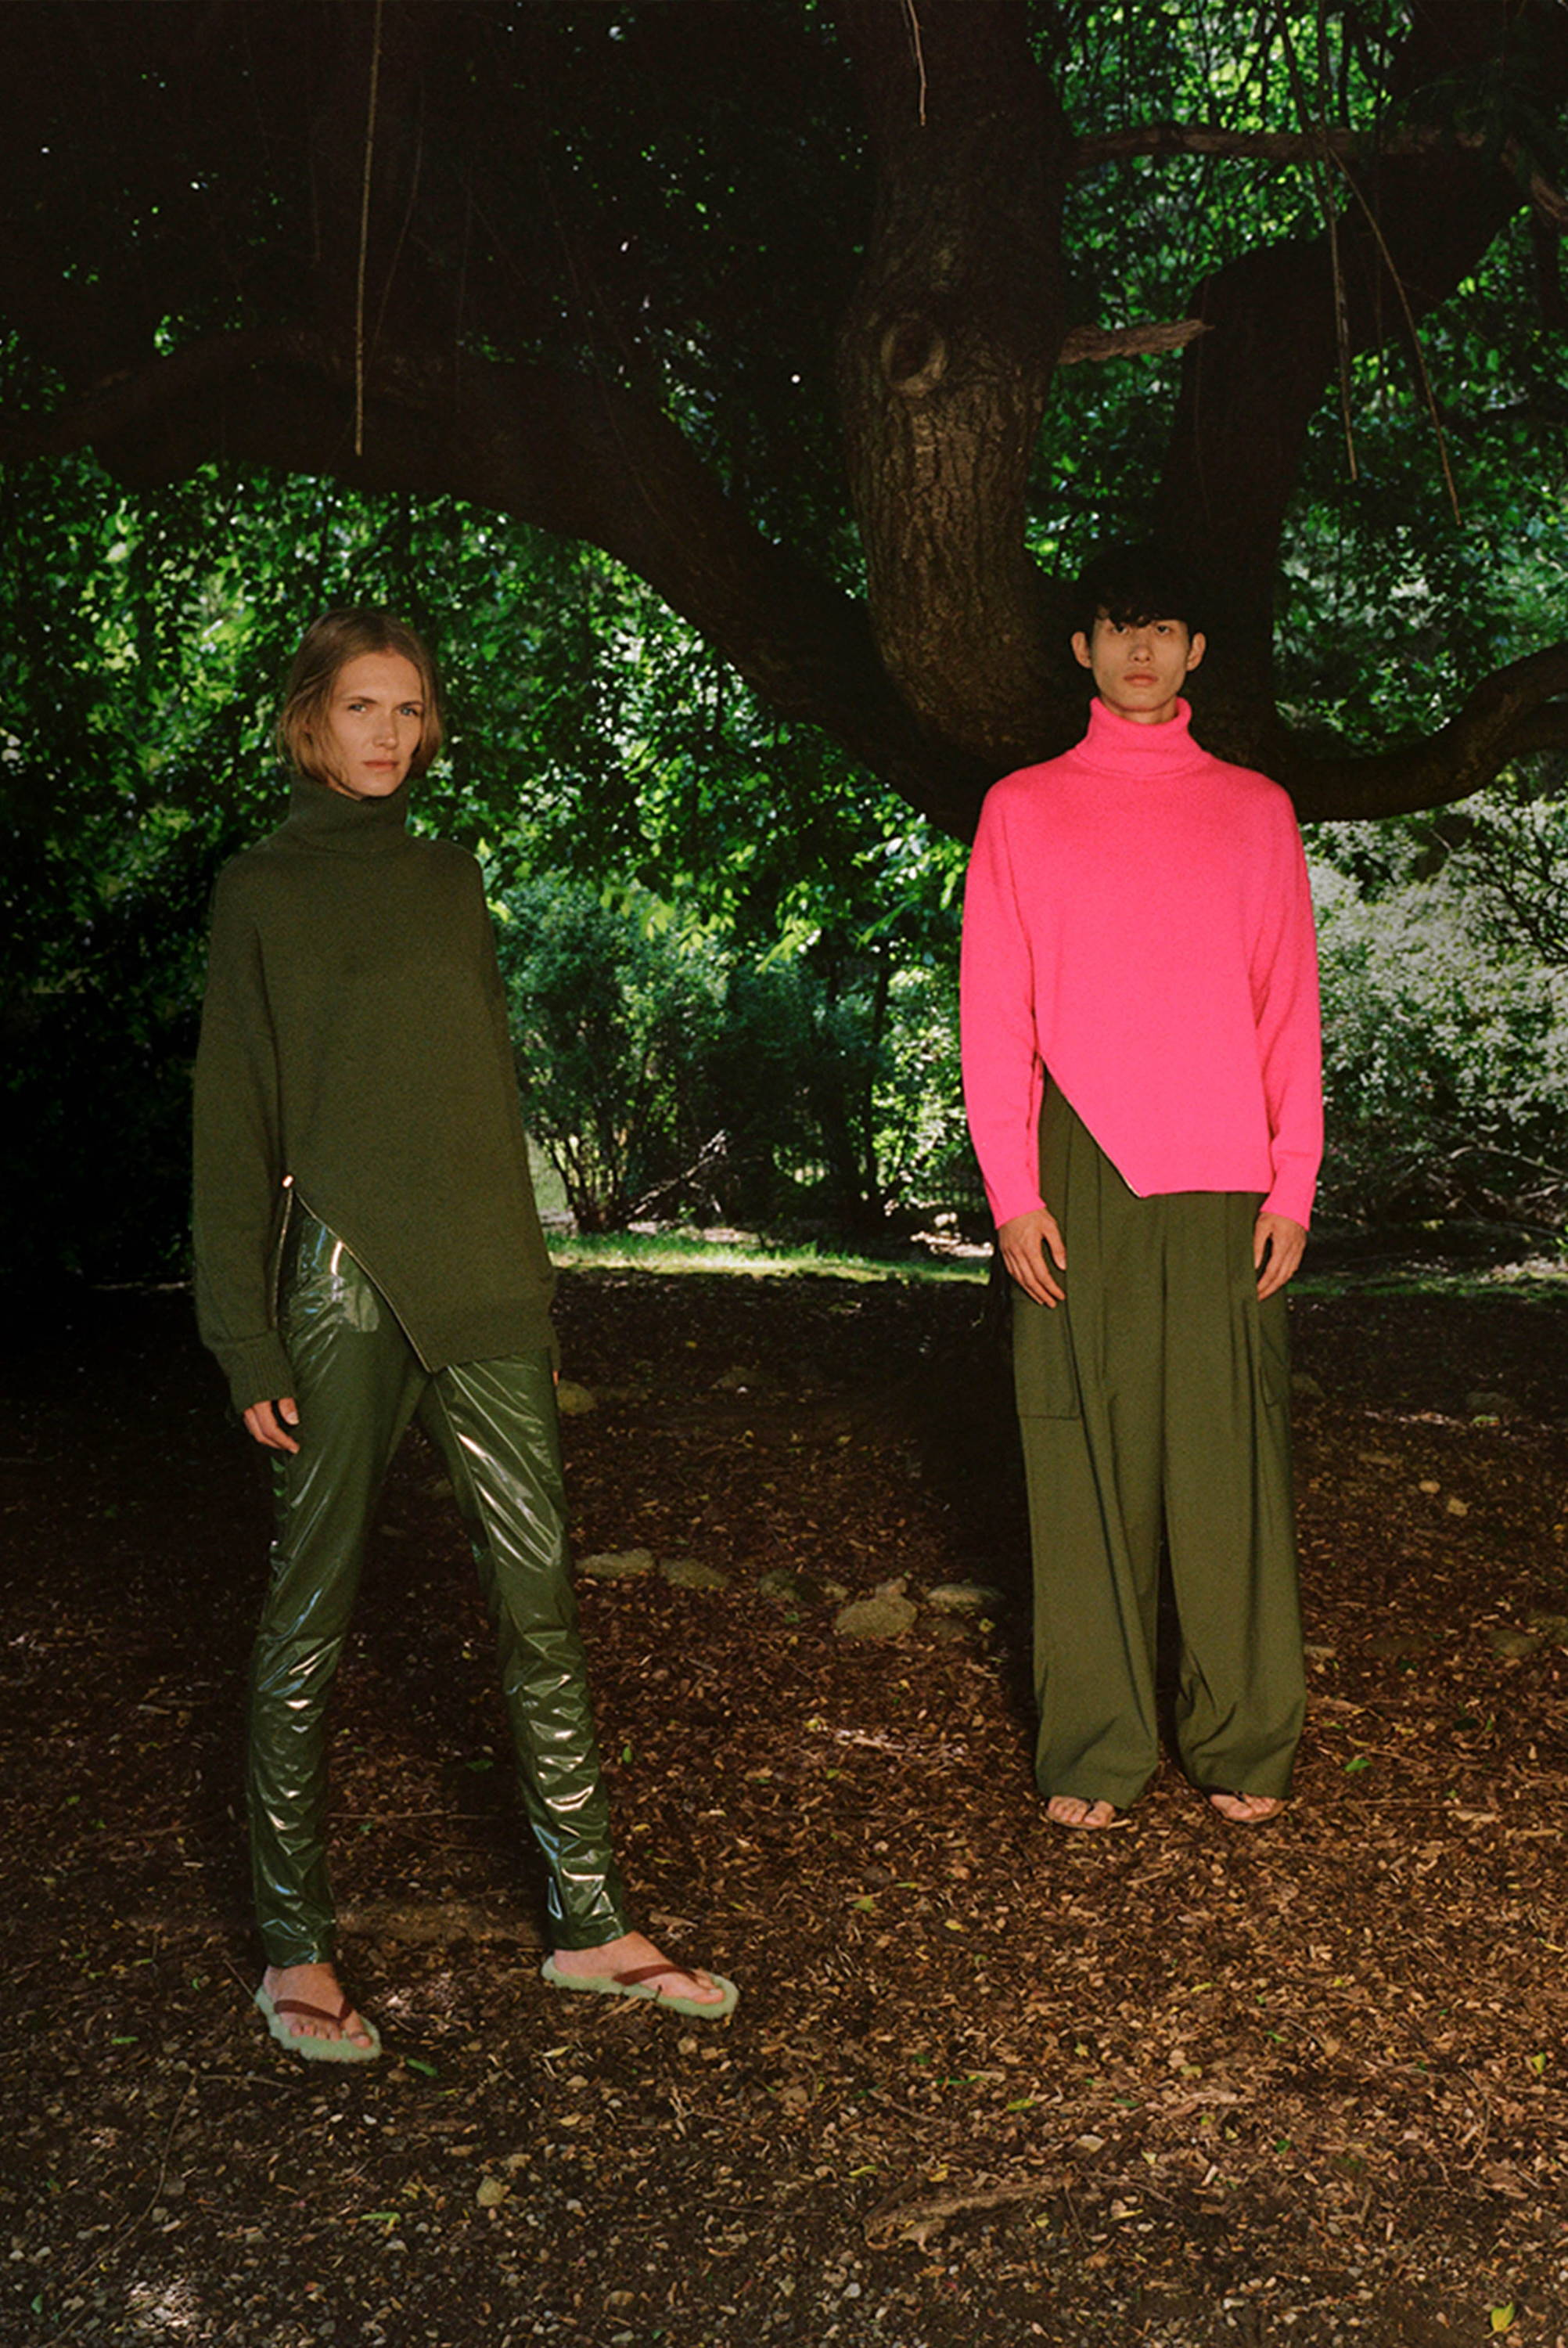 Two models standing under a tree. One model is wearing a green sweater and green tech patent pants. Male model is wearing hot pink sweater and green cargo pants.